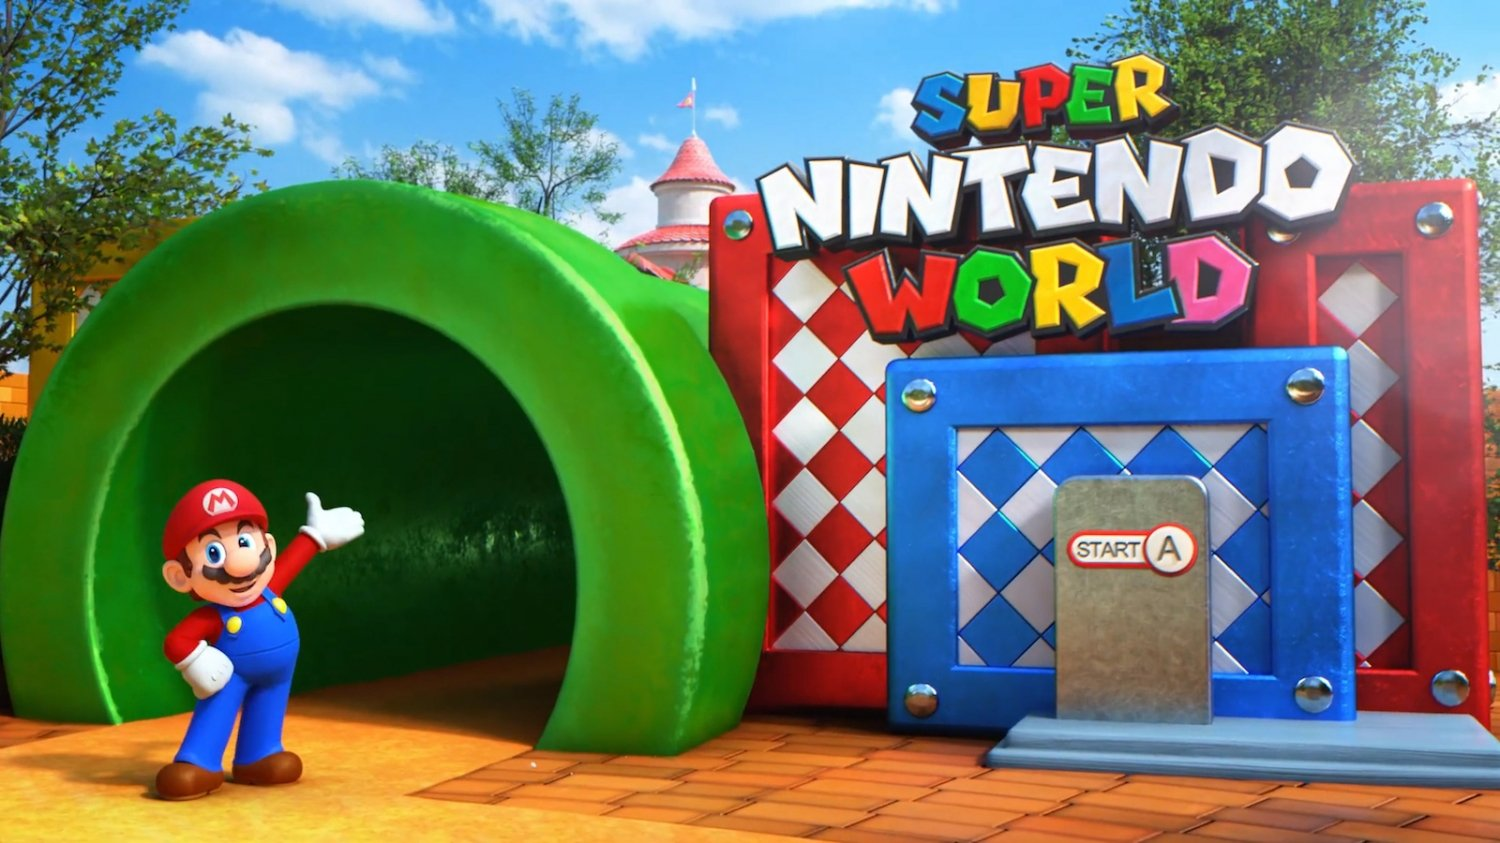 Super Nintendo World theme park looks like a real life Mario game - TweakTown